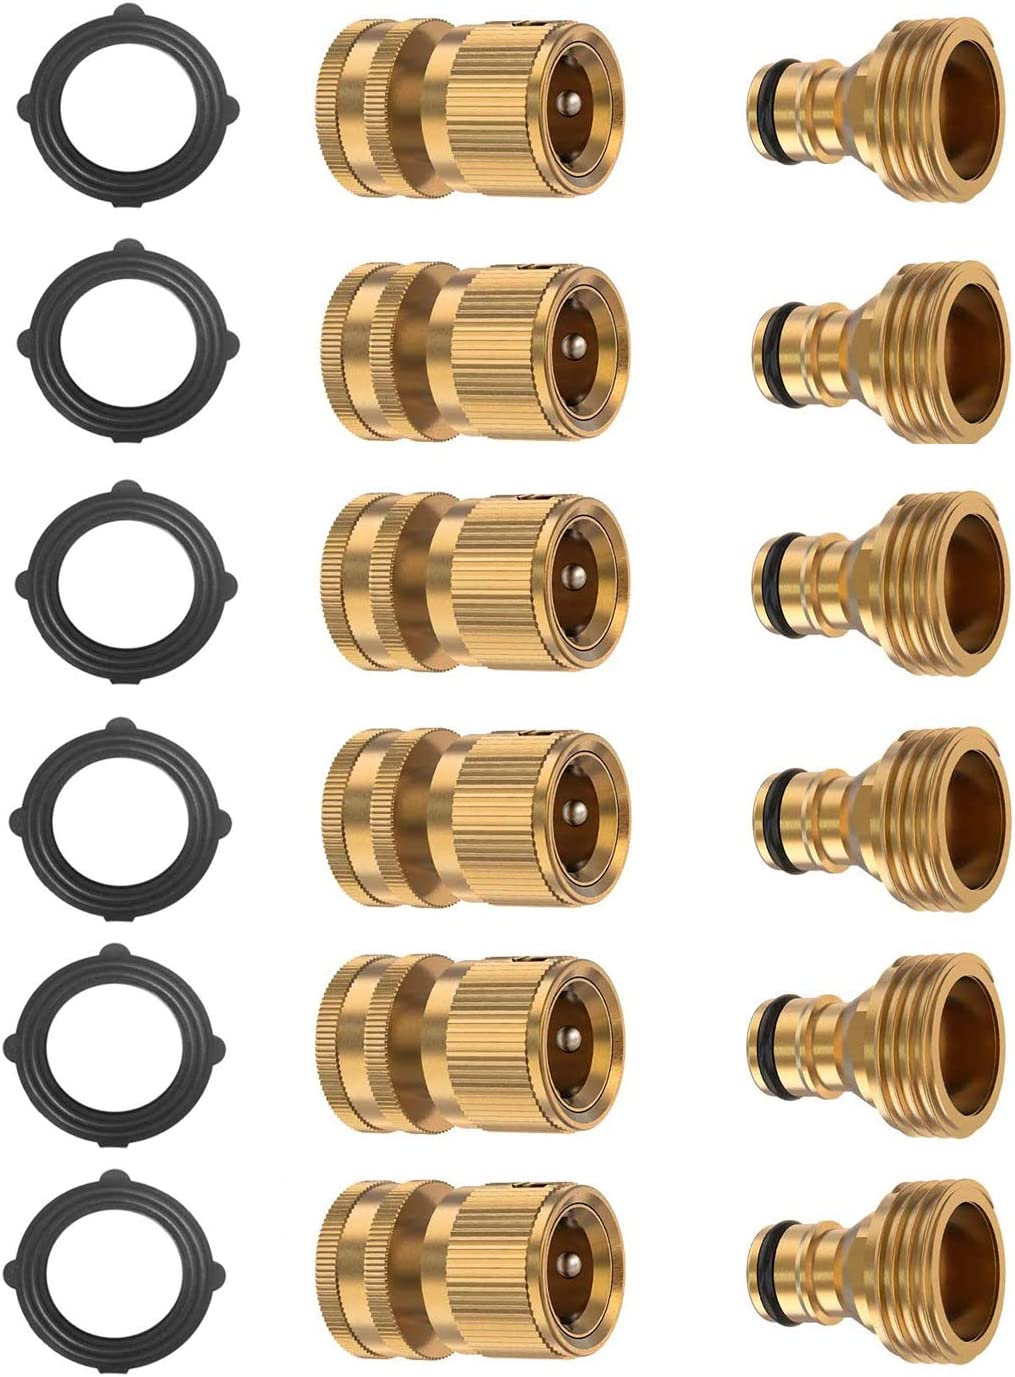 BoArt (6 Sets Garden Hose Quick Connector Set, Solid Brass 3/4 Inch Water Fitings Thread Easy Connect No-Leak Male Female